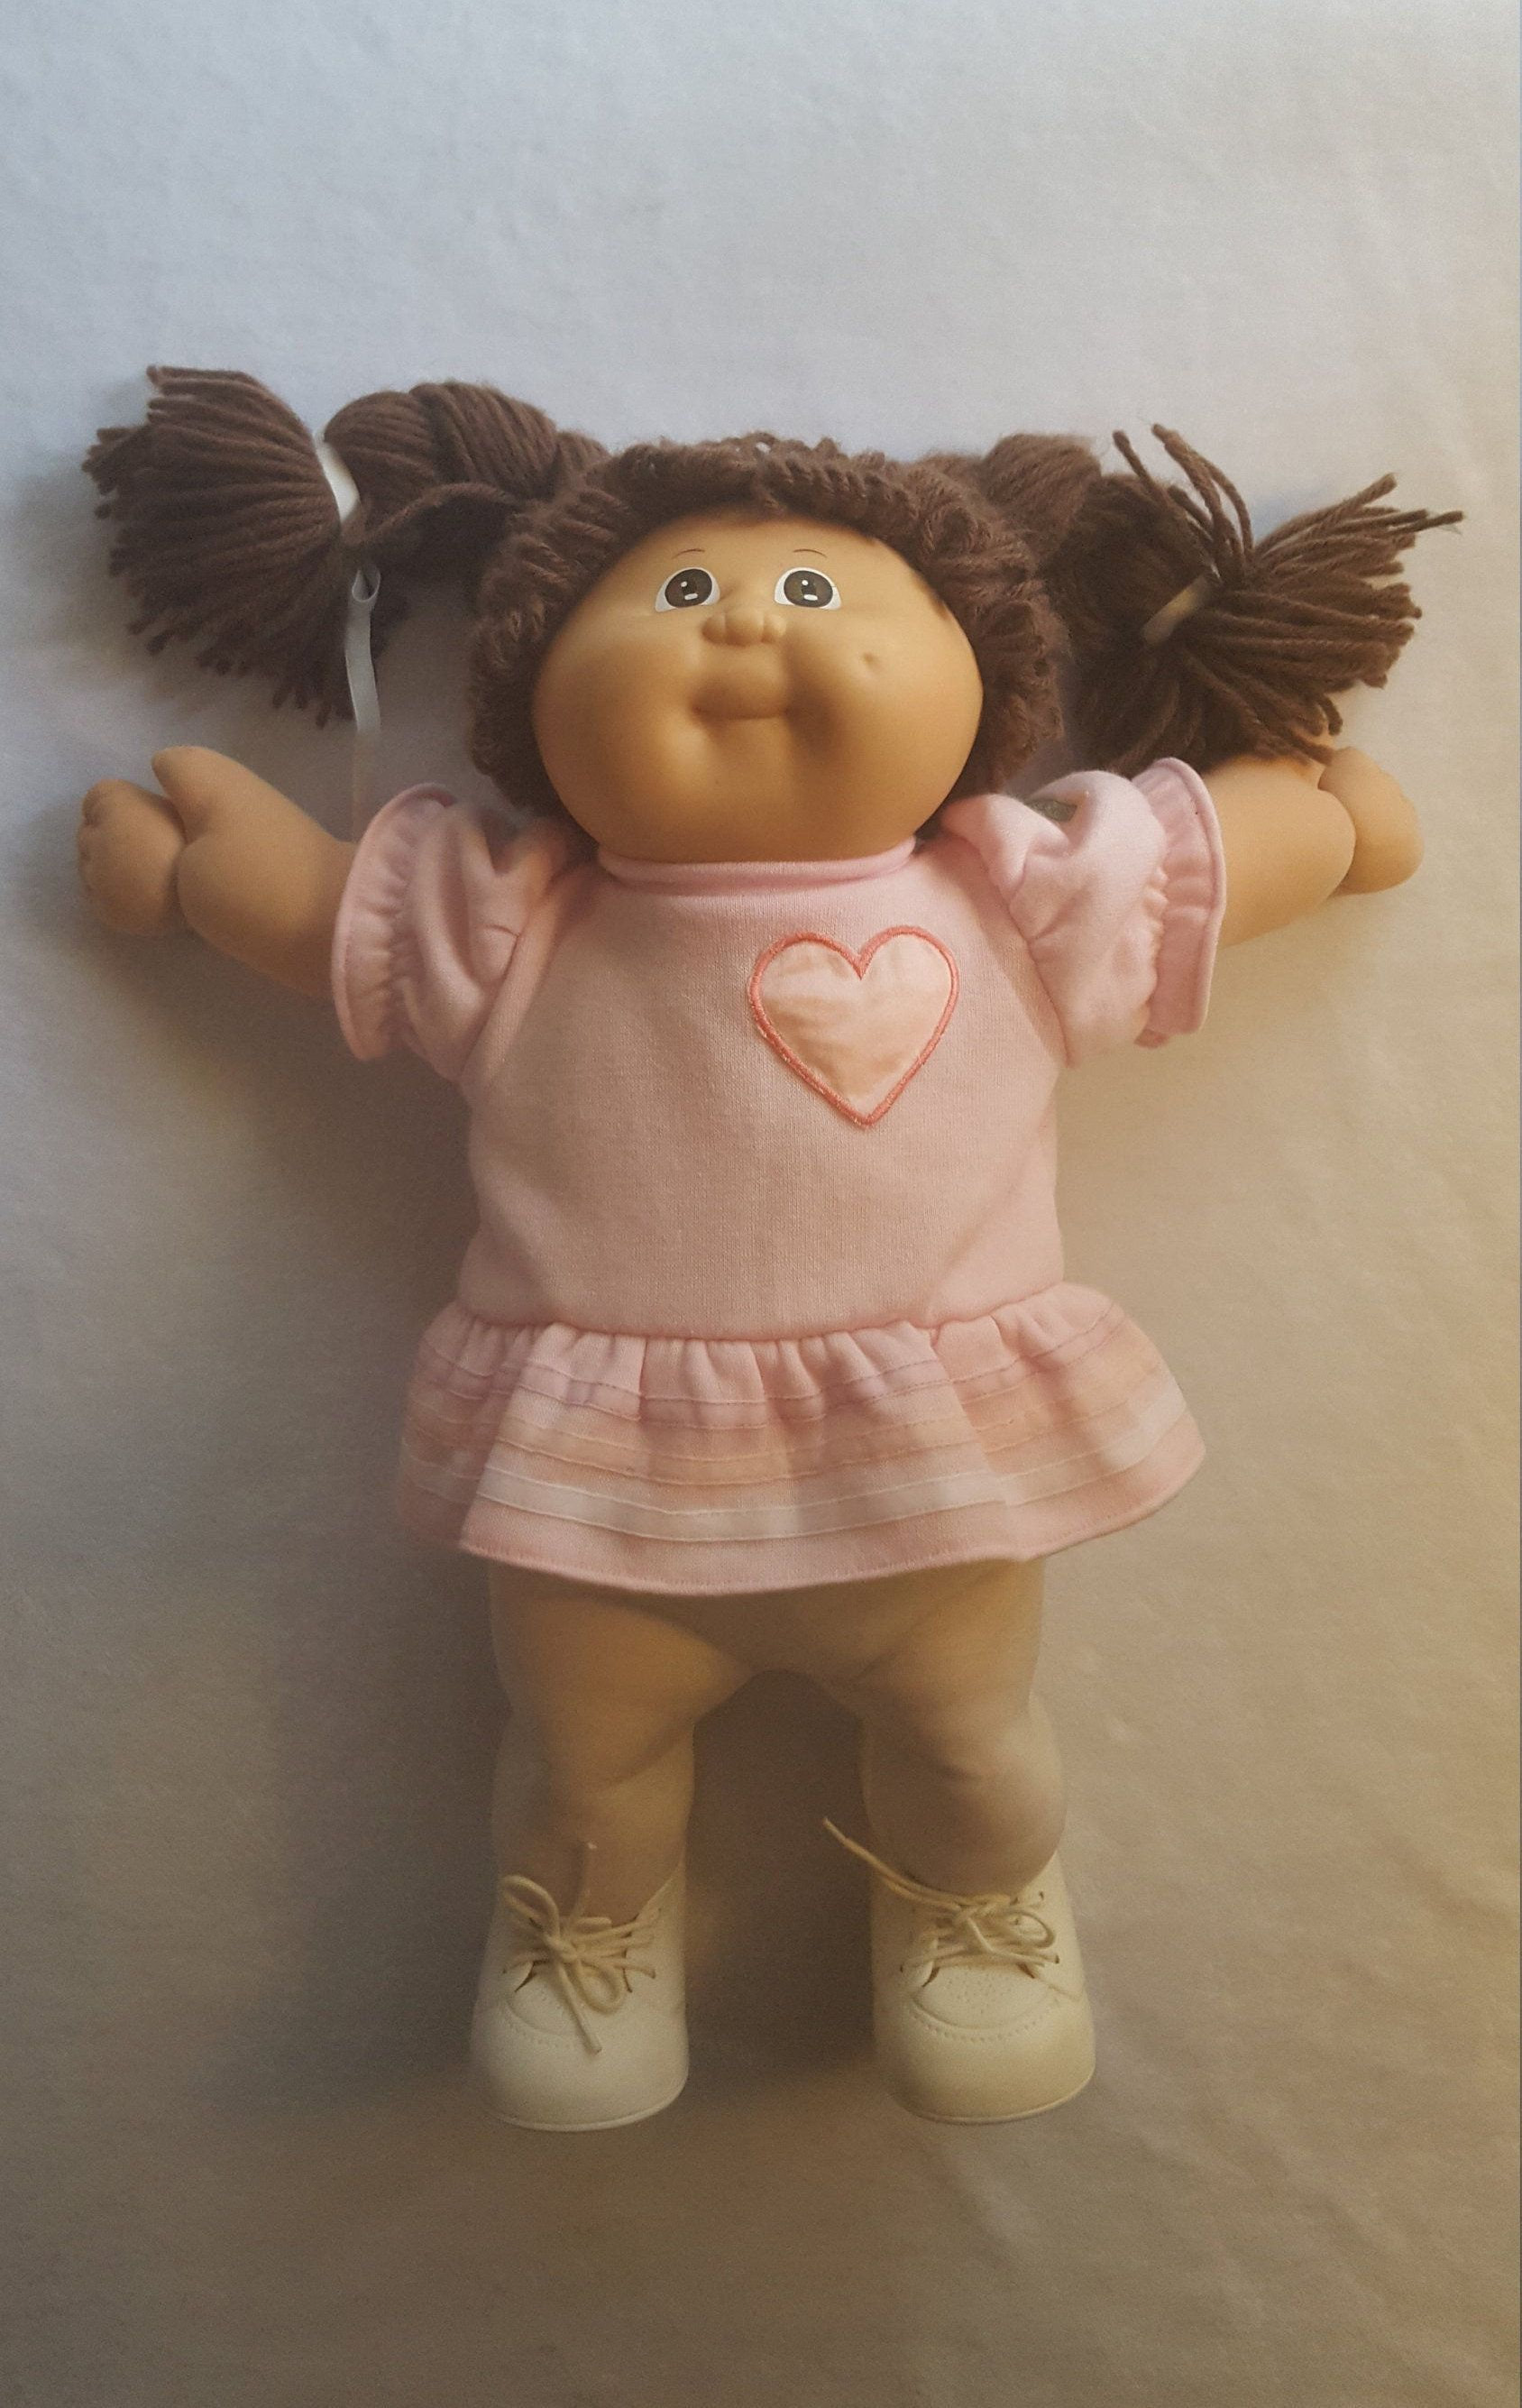 Vintage Cabbage Patch Doll With Original Box Papers Girl Etsy Vintage Cabbage Patch Dolls Cabbage Patch Dolls Cabbage Patch Kids